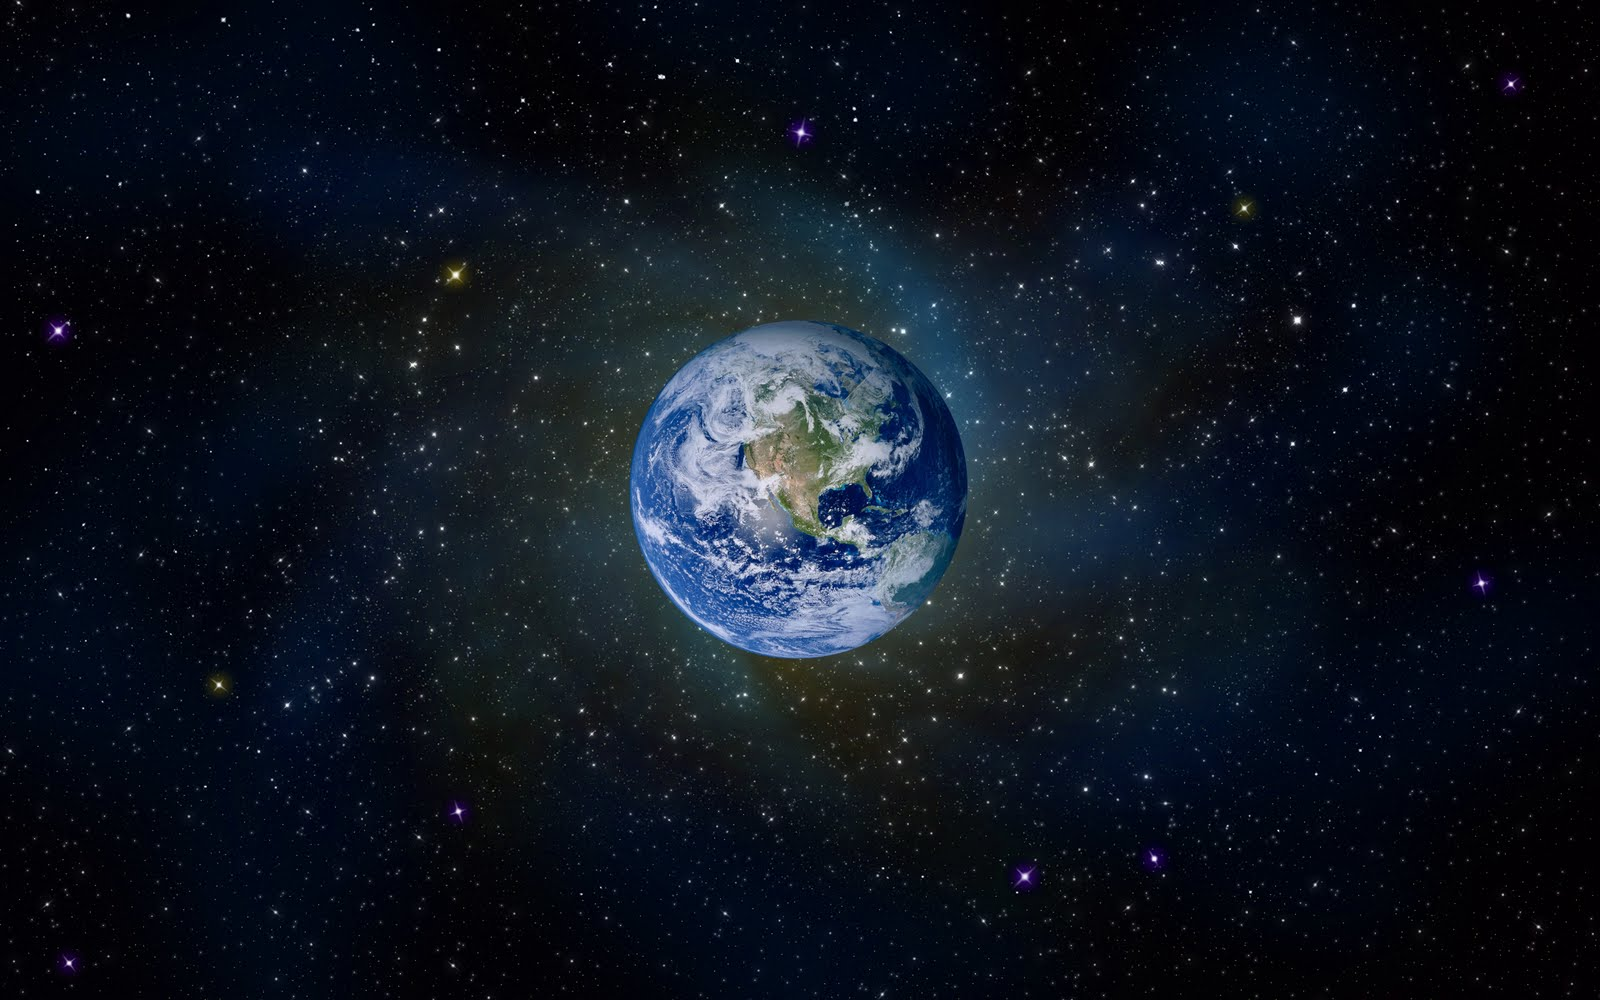 Earth From Space Wallpaper Hd: Wallpaper: 1080p Wallpapers Of Space